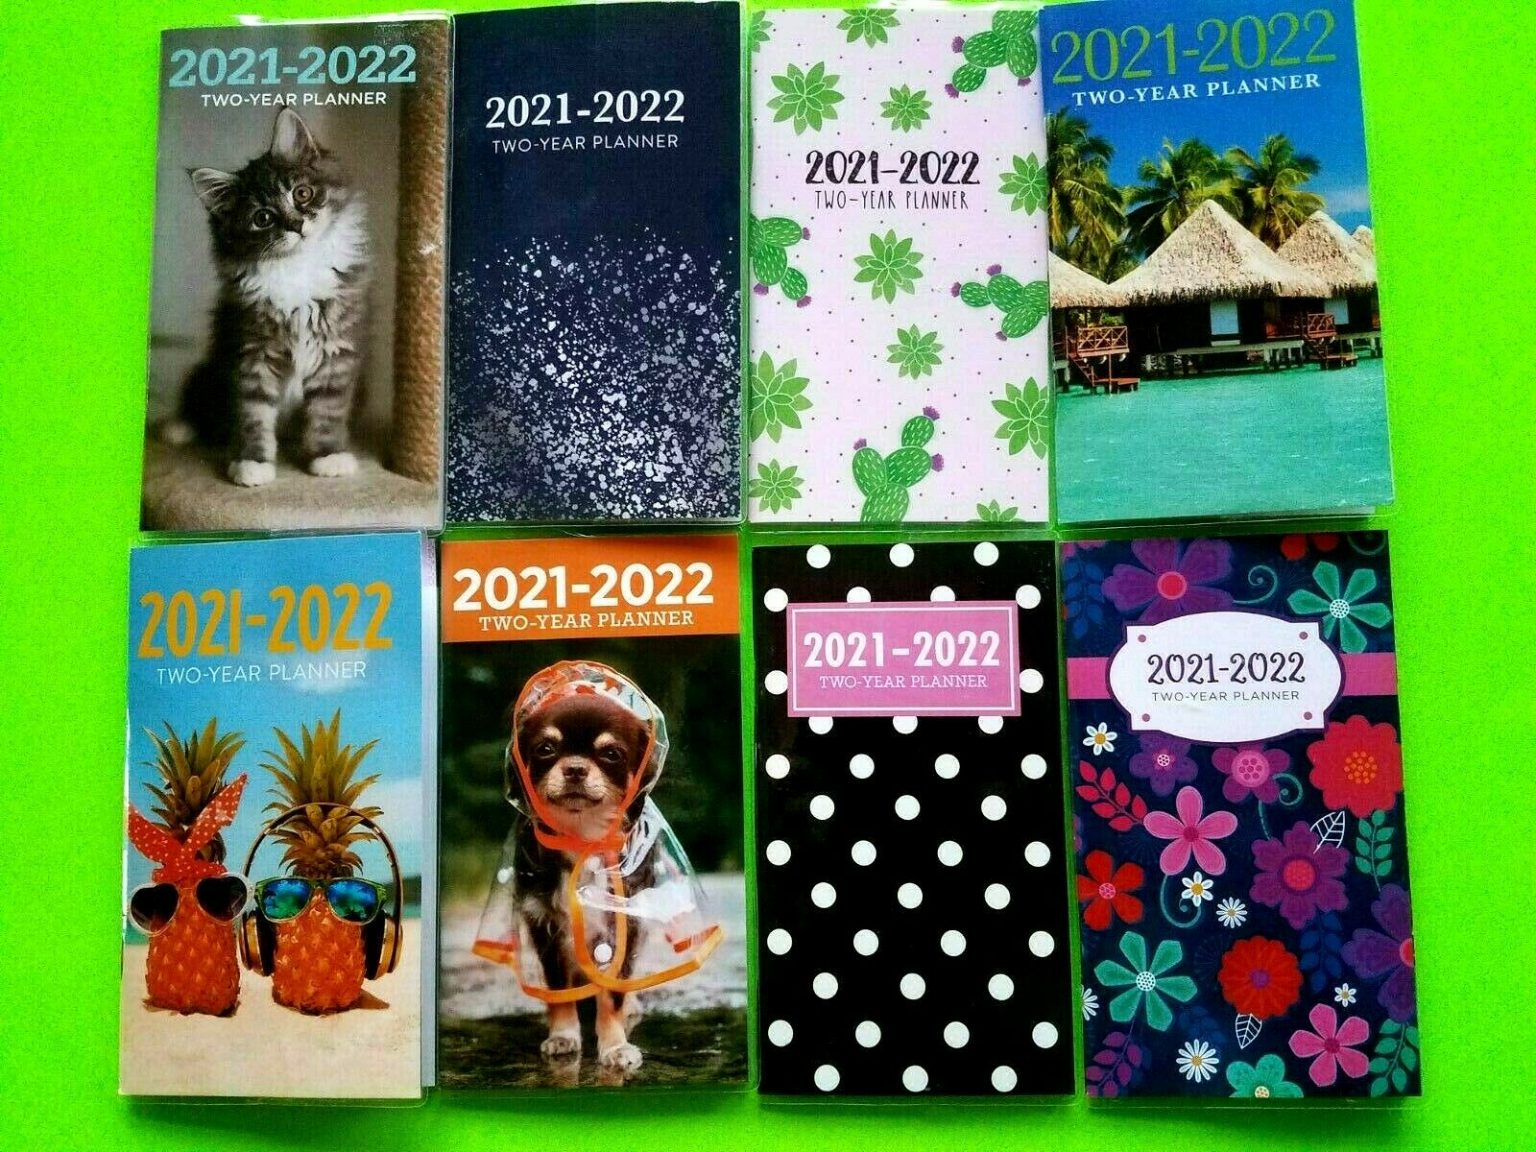 2021-2022 2 Year Planner Monthly Pocket Small Calendar 3.3 throughout 2021-2021 Planner: 2-Year Planner